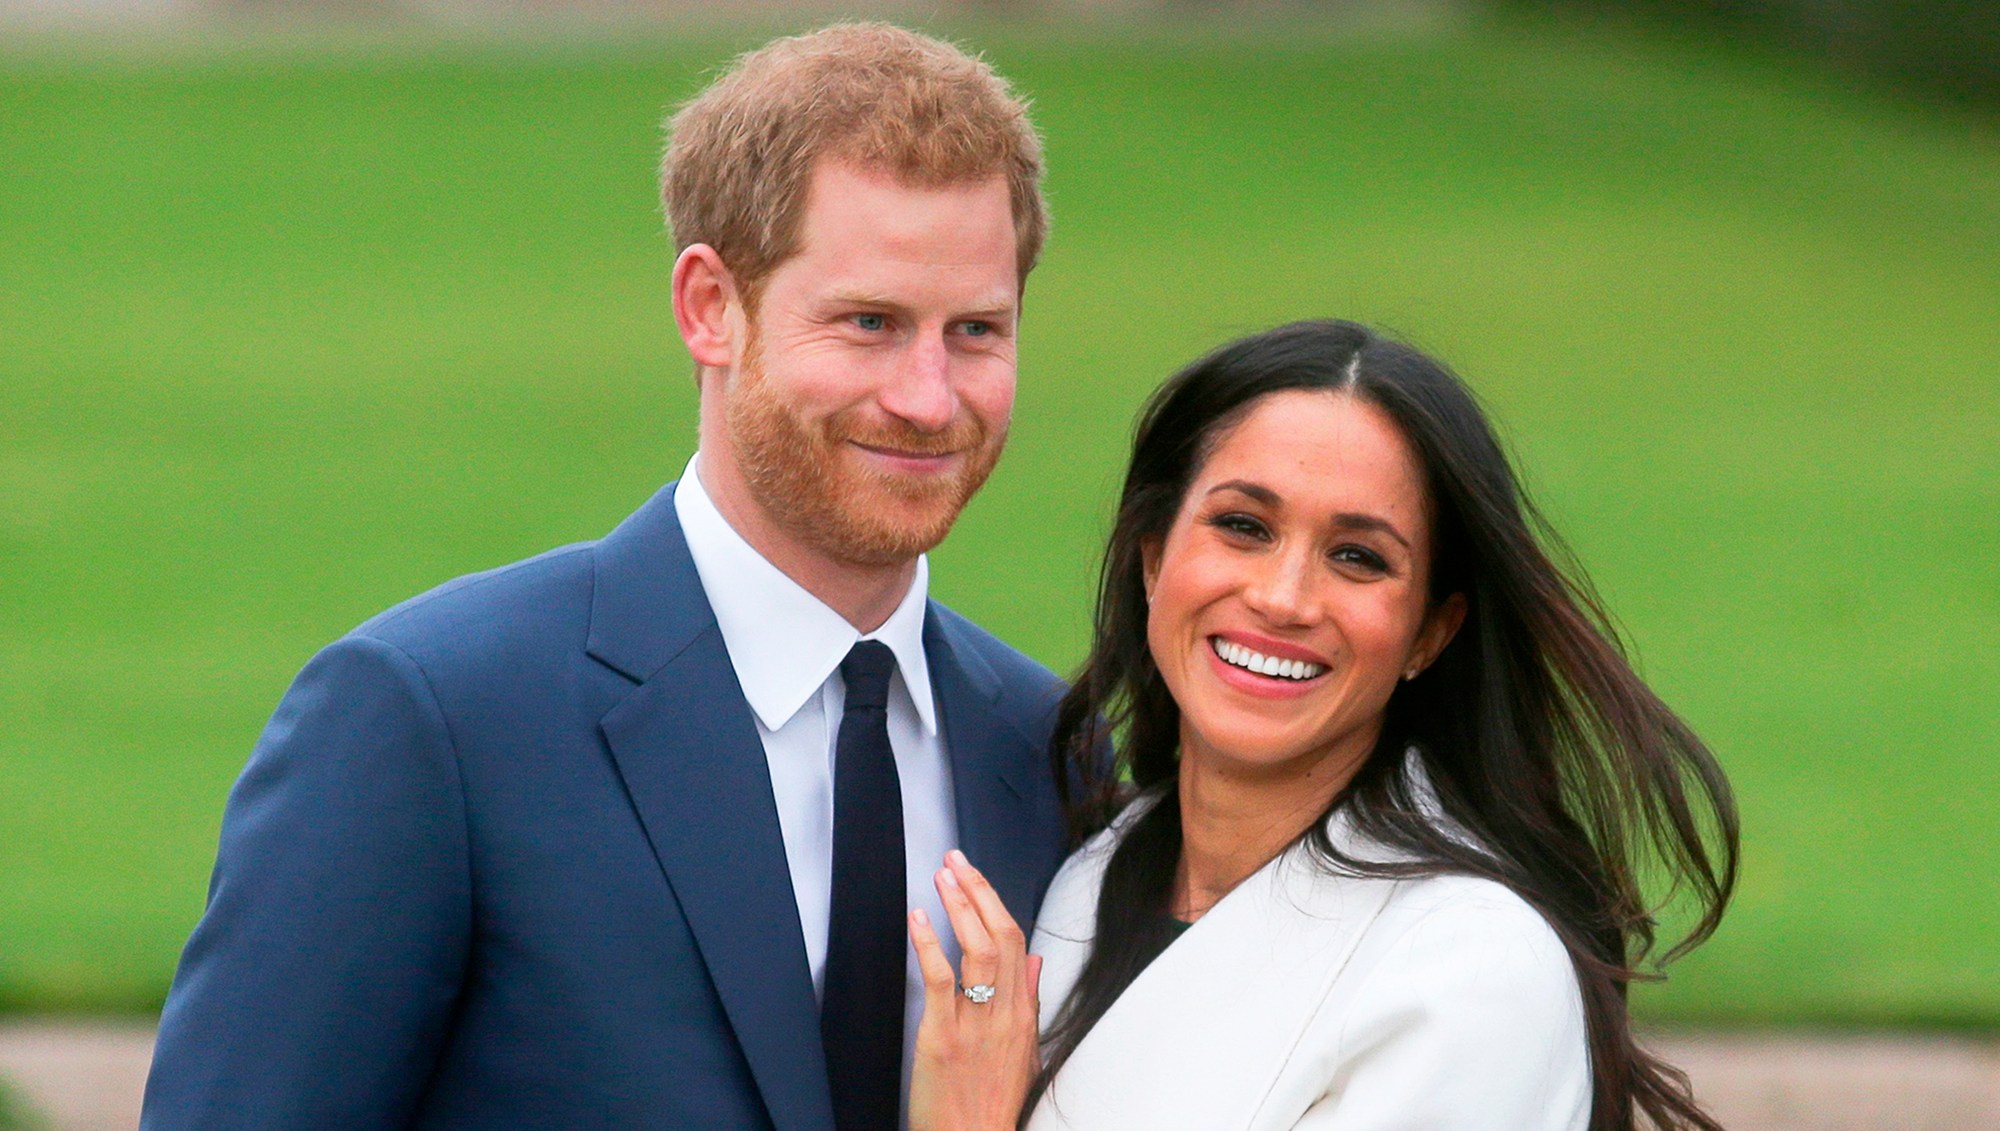 Prince Harry and Meghan Markle attend an official photocall to announce their engagement at The Sunken Gardens at Kensington Palace on November 27, 2017 in London, England.